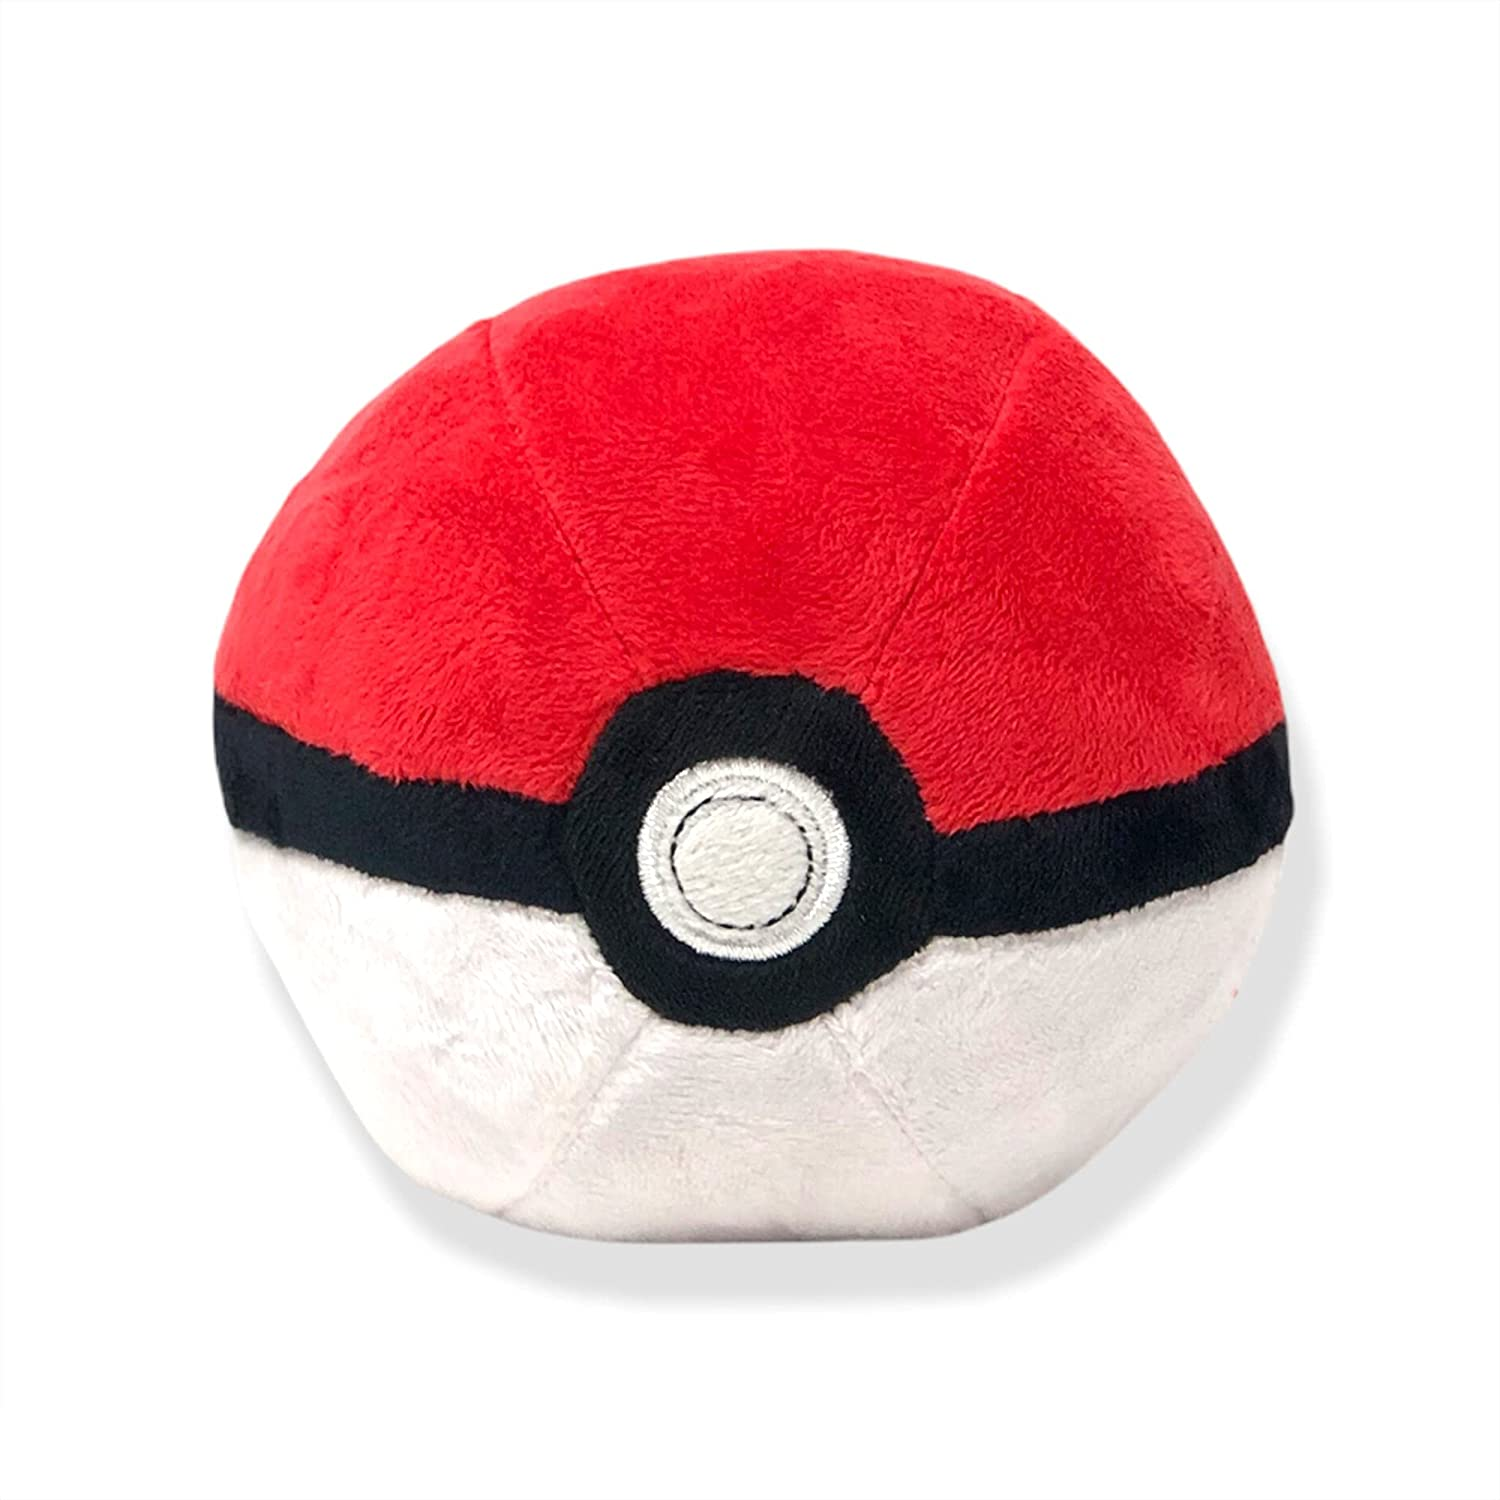 Dom-Dom Ranking TOP8 Best Pokeball Plush Figure Inches Max 46% OFF 4 - Toy